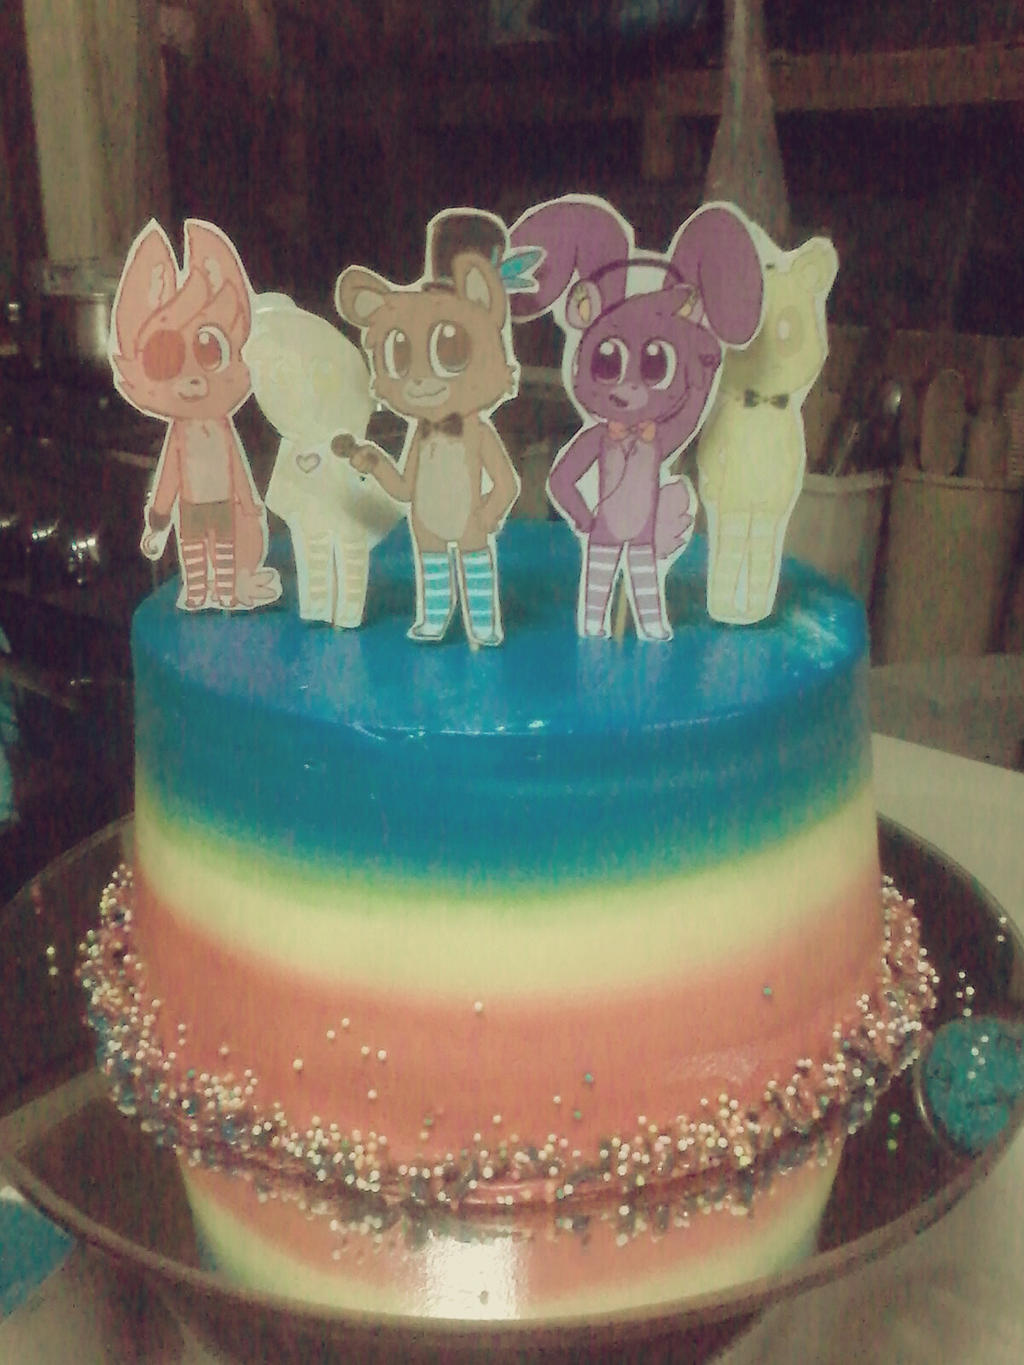 My fnaf birthday cake by cookie and her foxes on deviantart my fnaf birthday cake by cookie and her foxes publicscrutiny Gallery